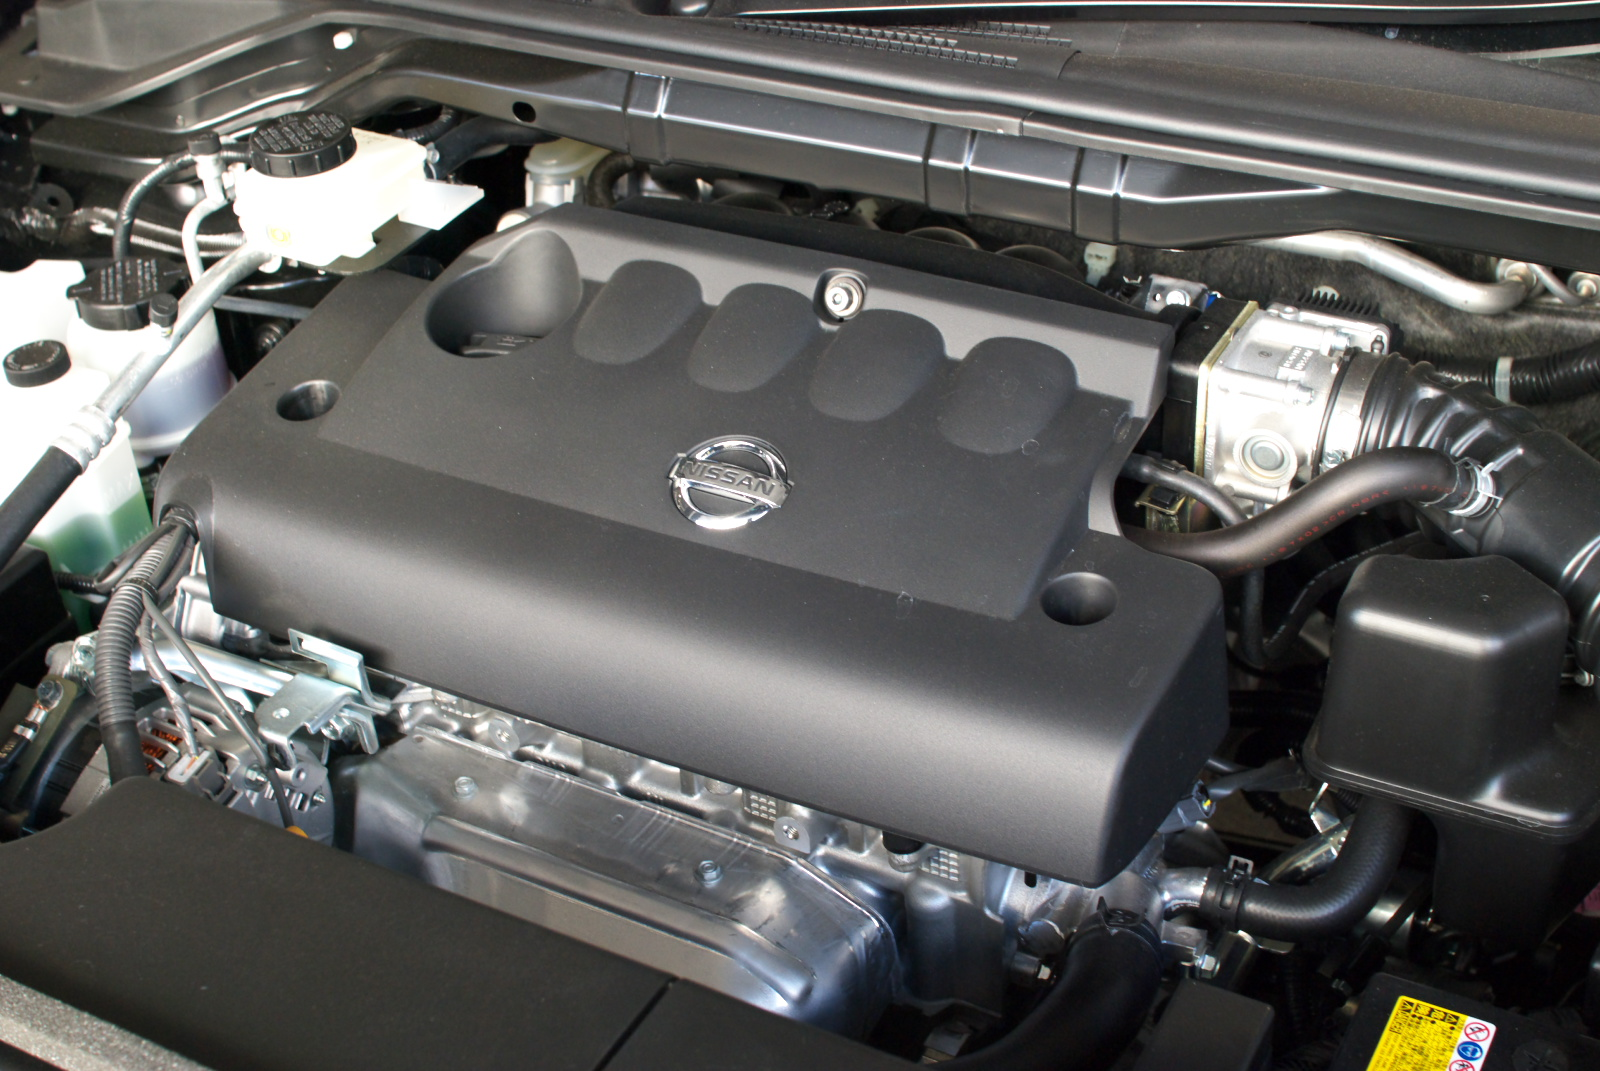 Intake Manifold In Nissan Altima Engine Diagram Get Free